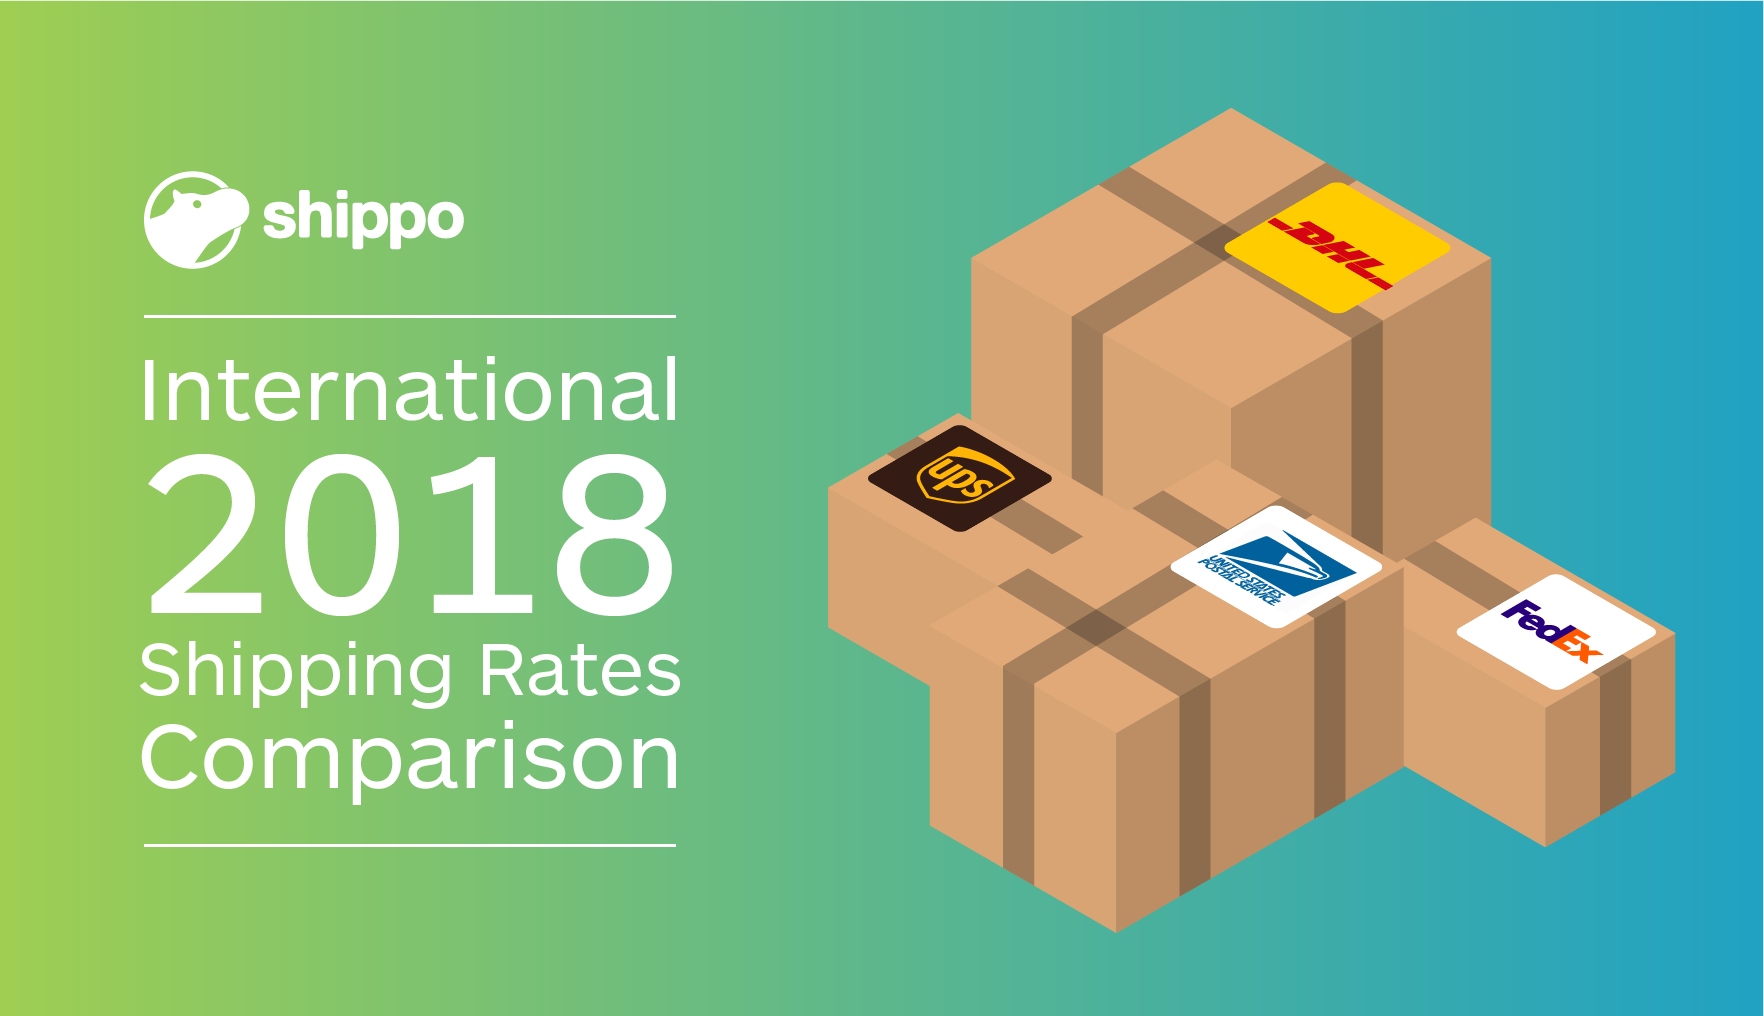 2018 International Shipping Rates Comparison - DHL vs. FedEx vs. UPS vs. USPS